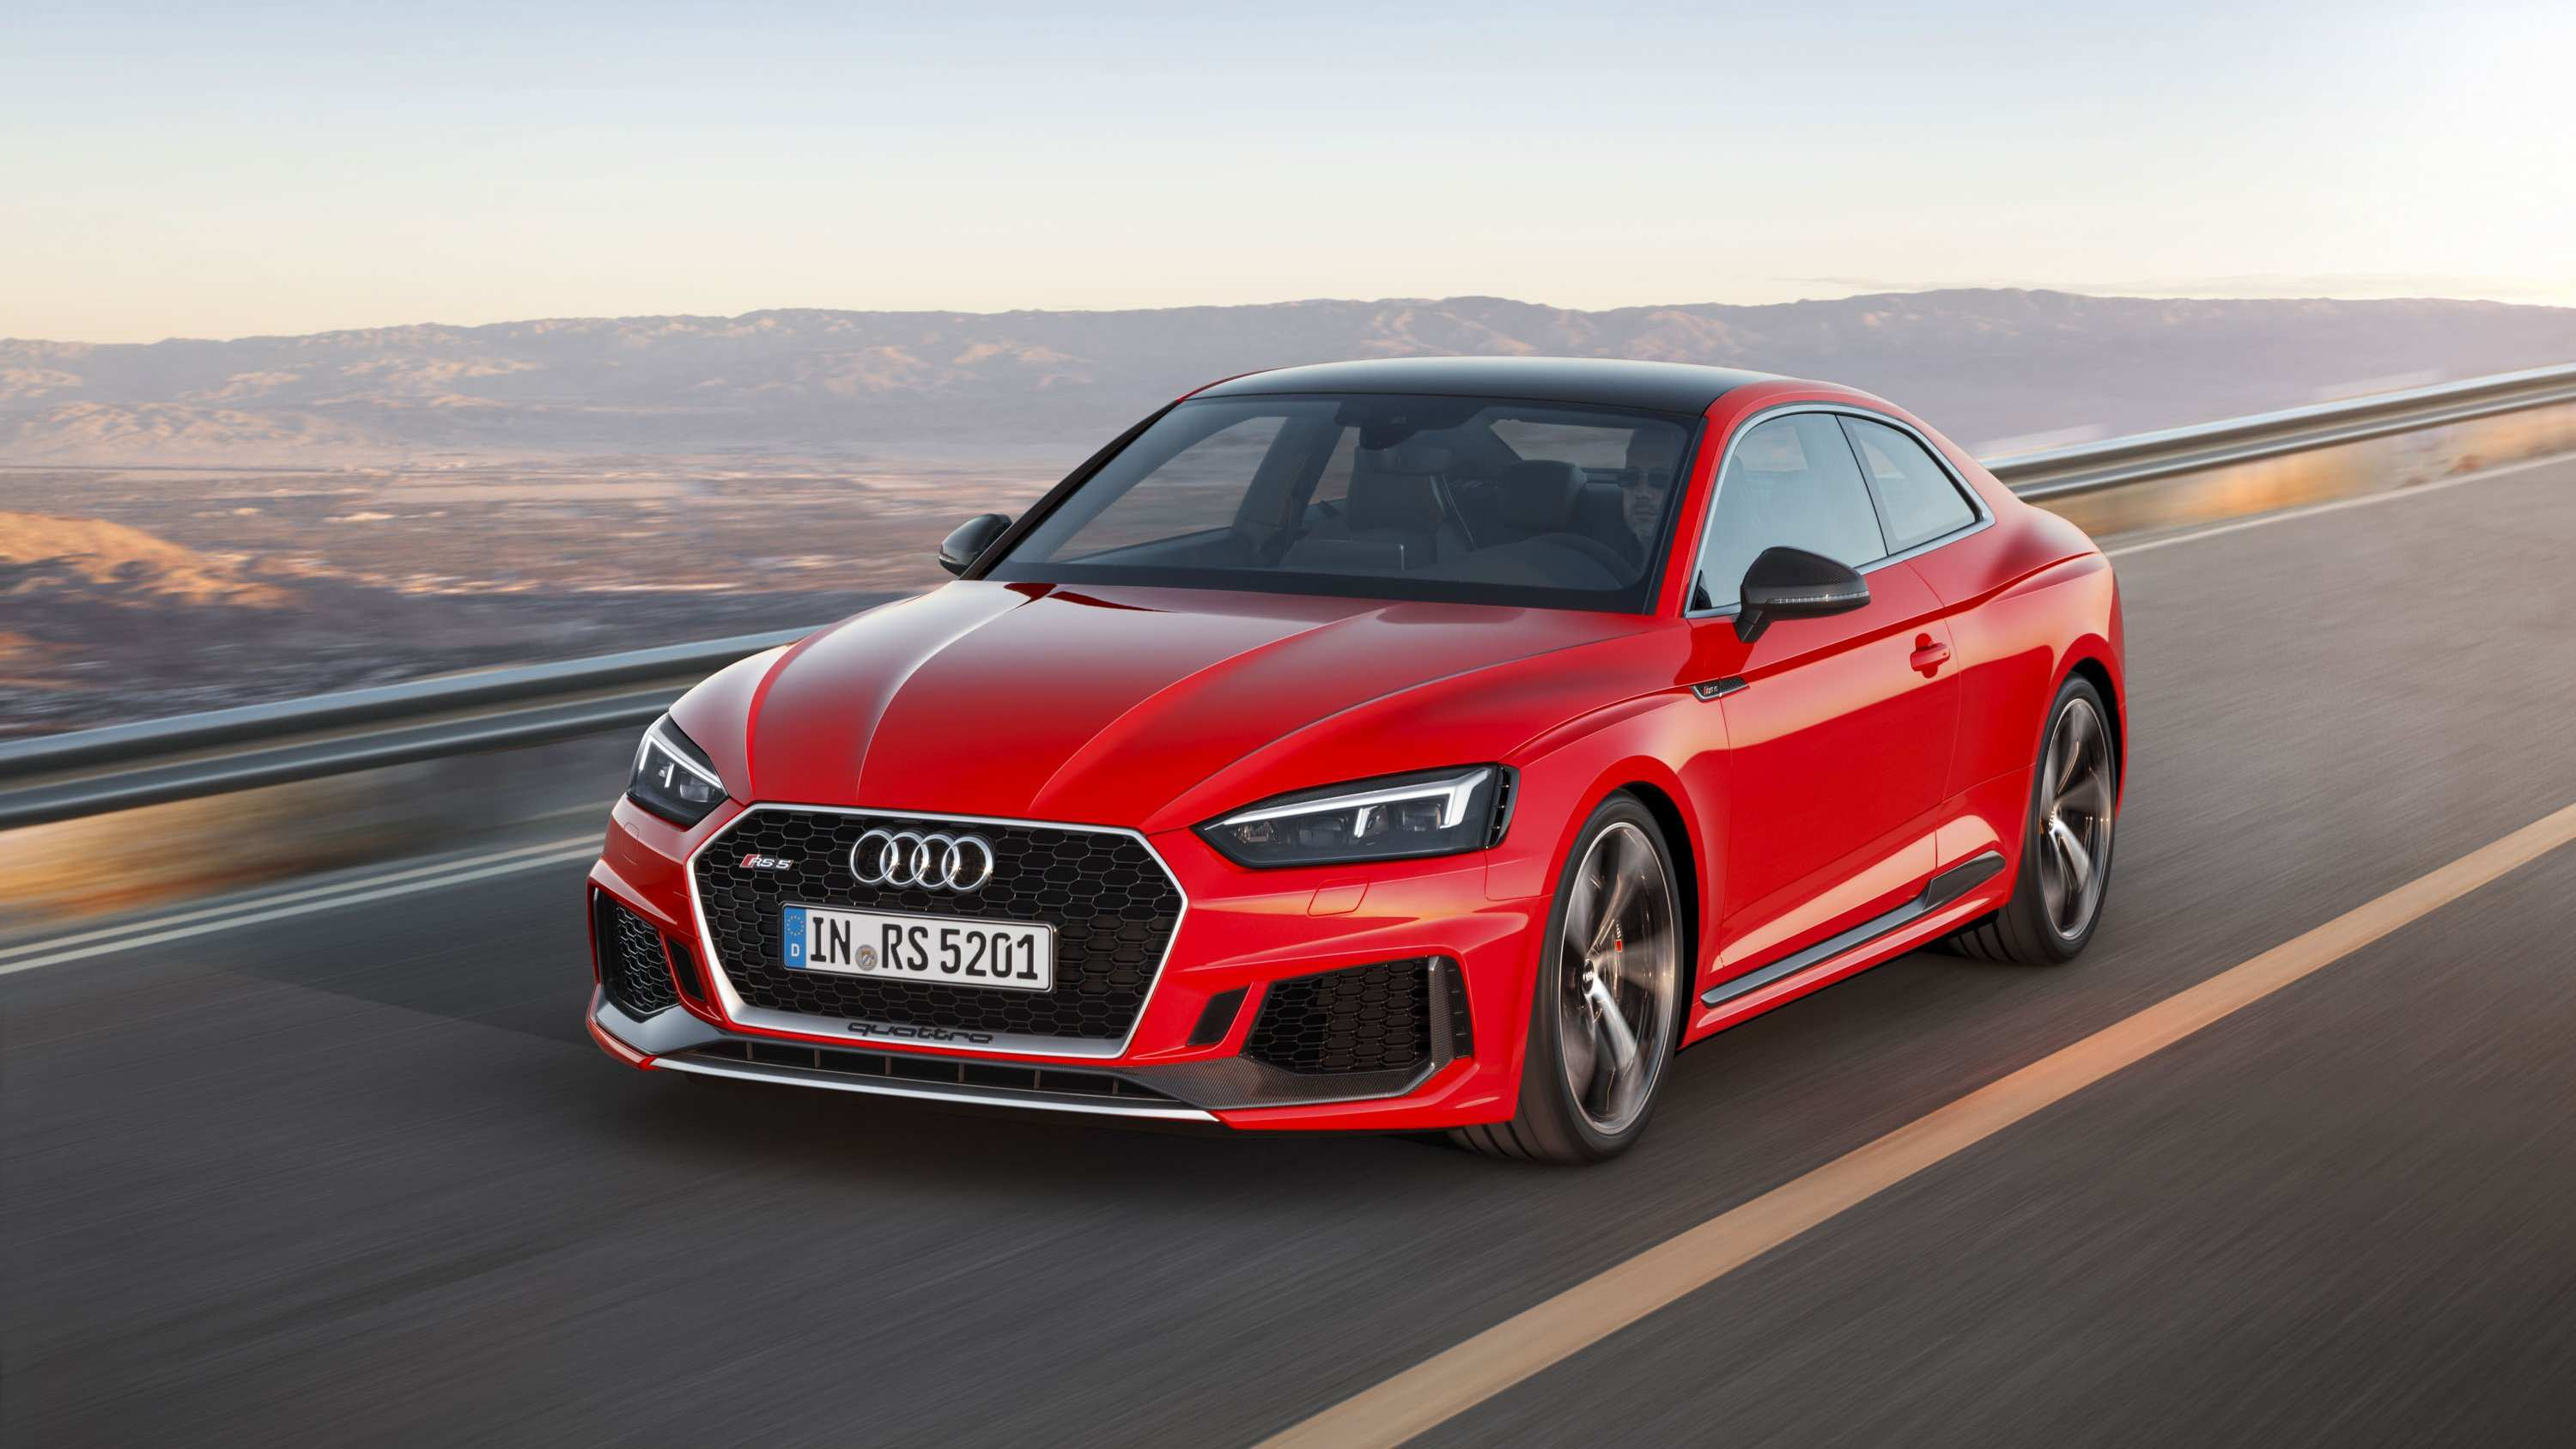 83 Gallery of New 2019 Audi Rs5 Exterior and Interior by New 2019 Audi Rs5